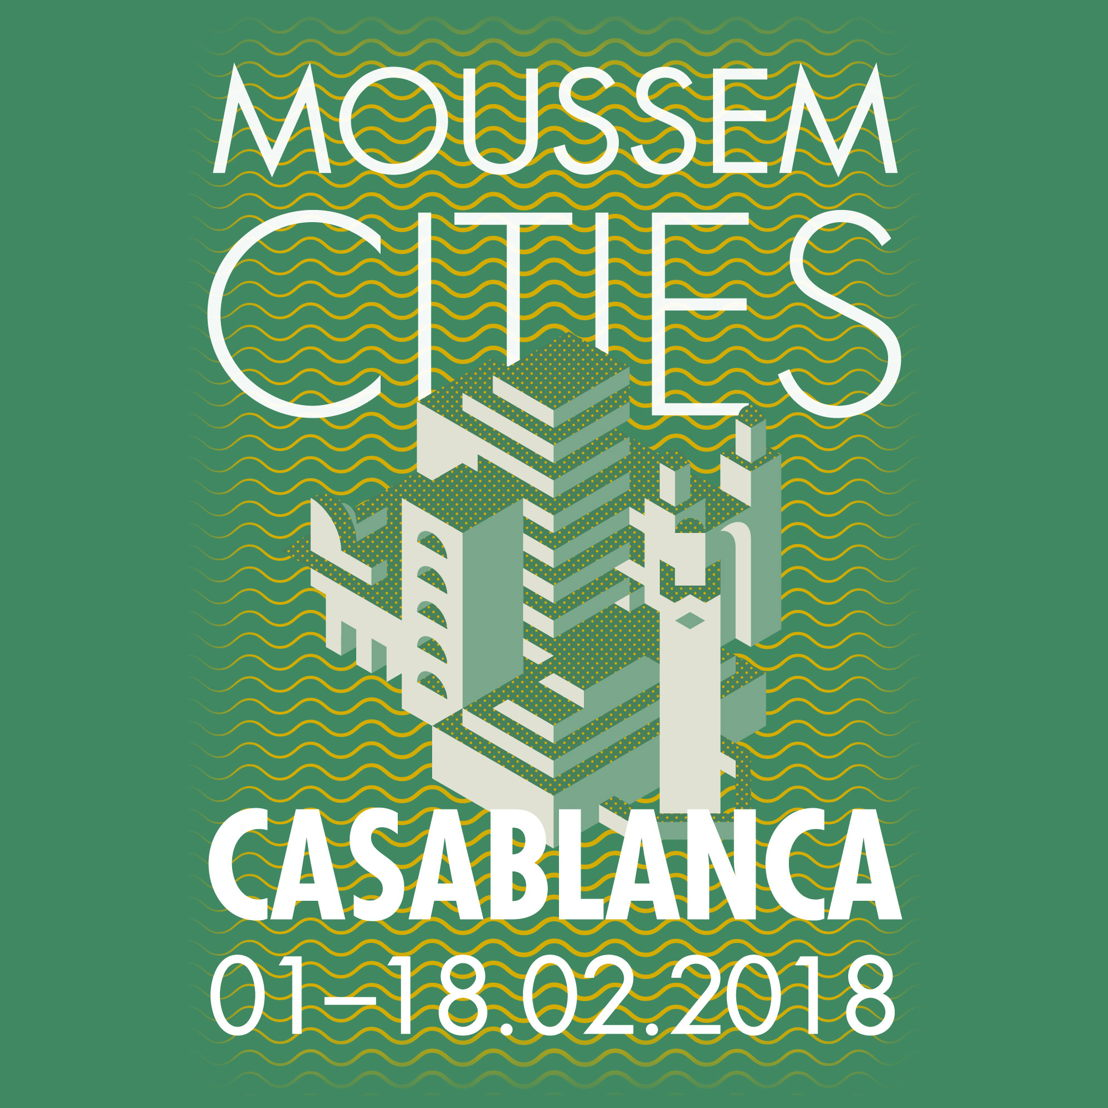 Moussem Cities - Casablanca